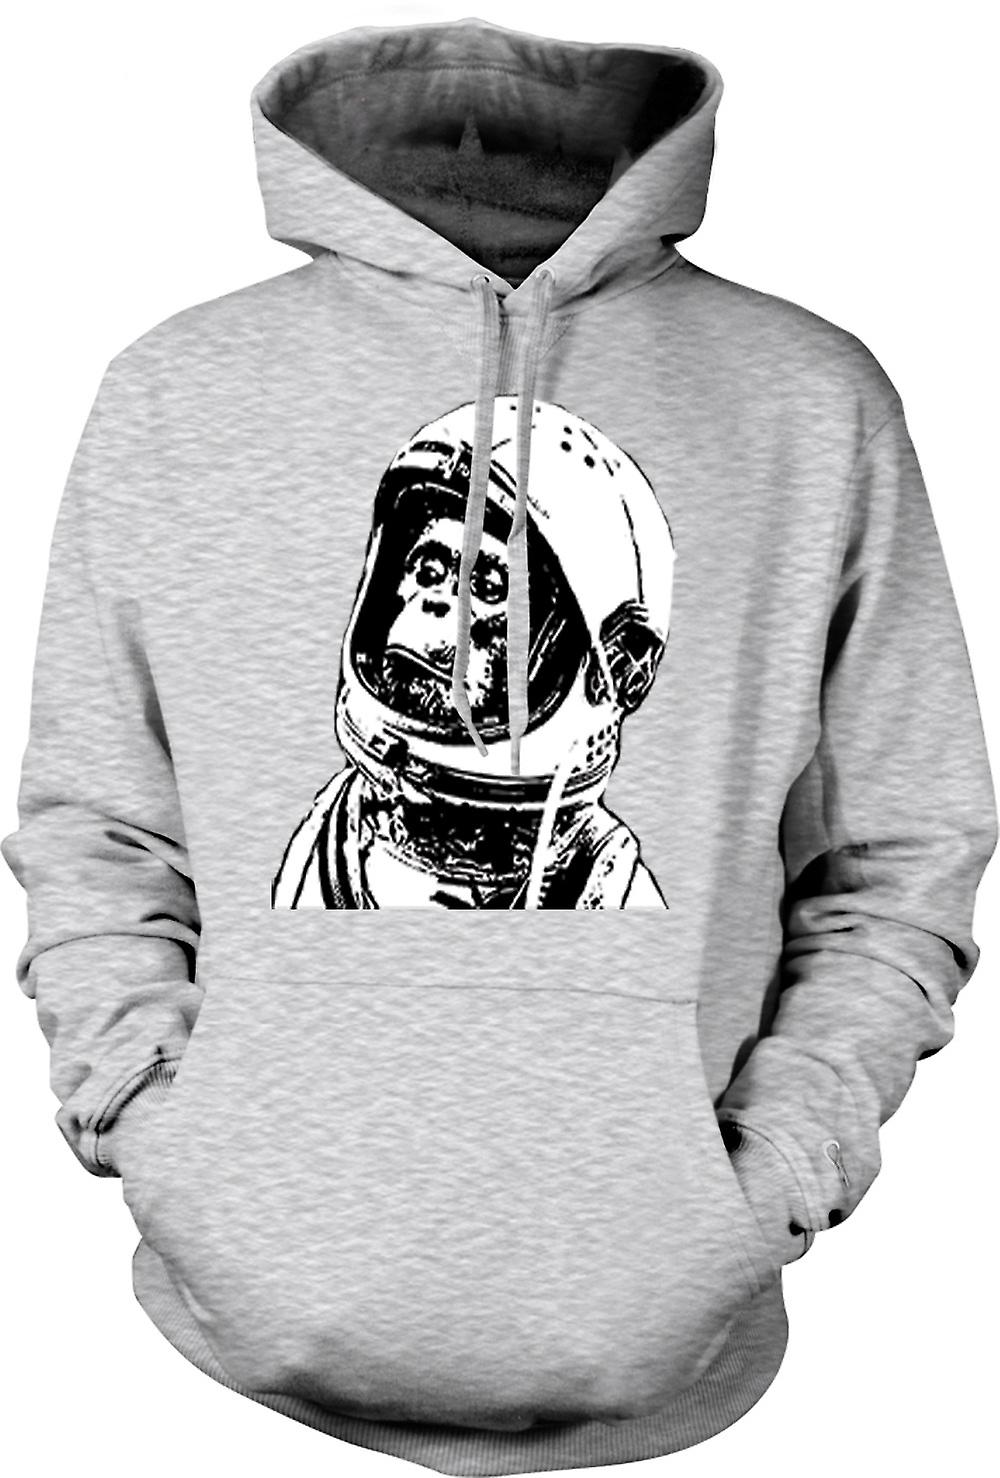 Mens Hoodie - Space Monkey Black & White Drawing